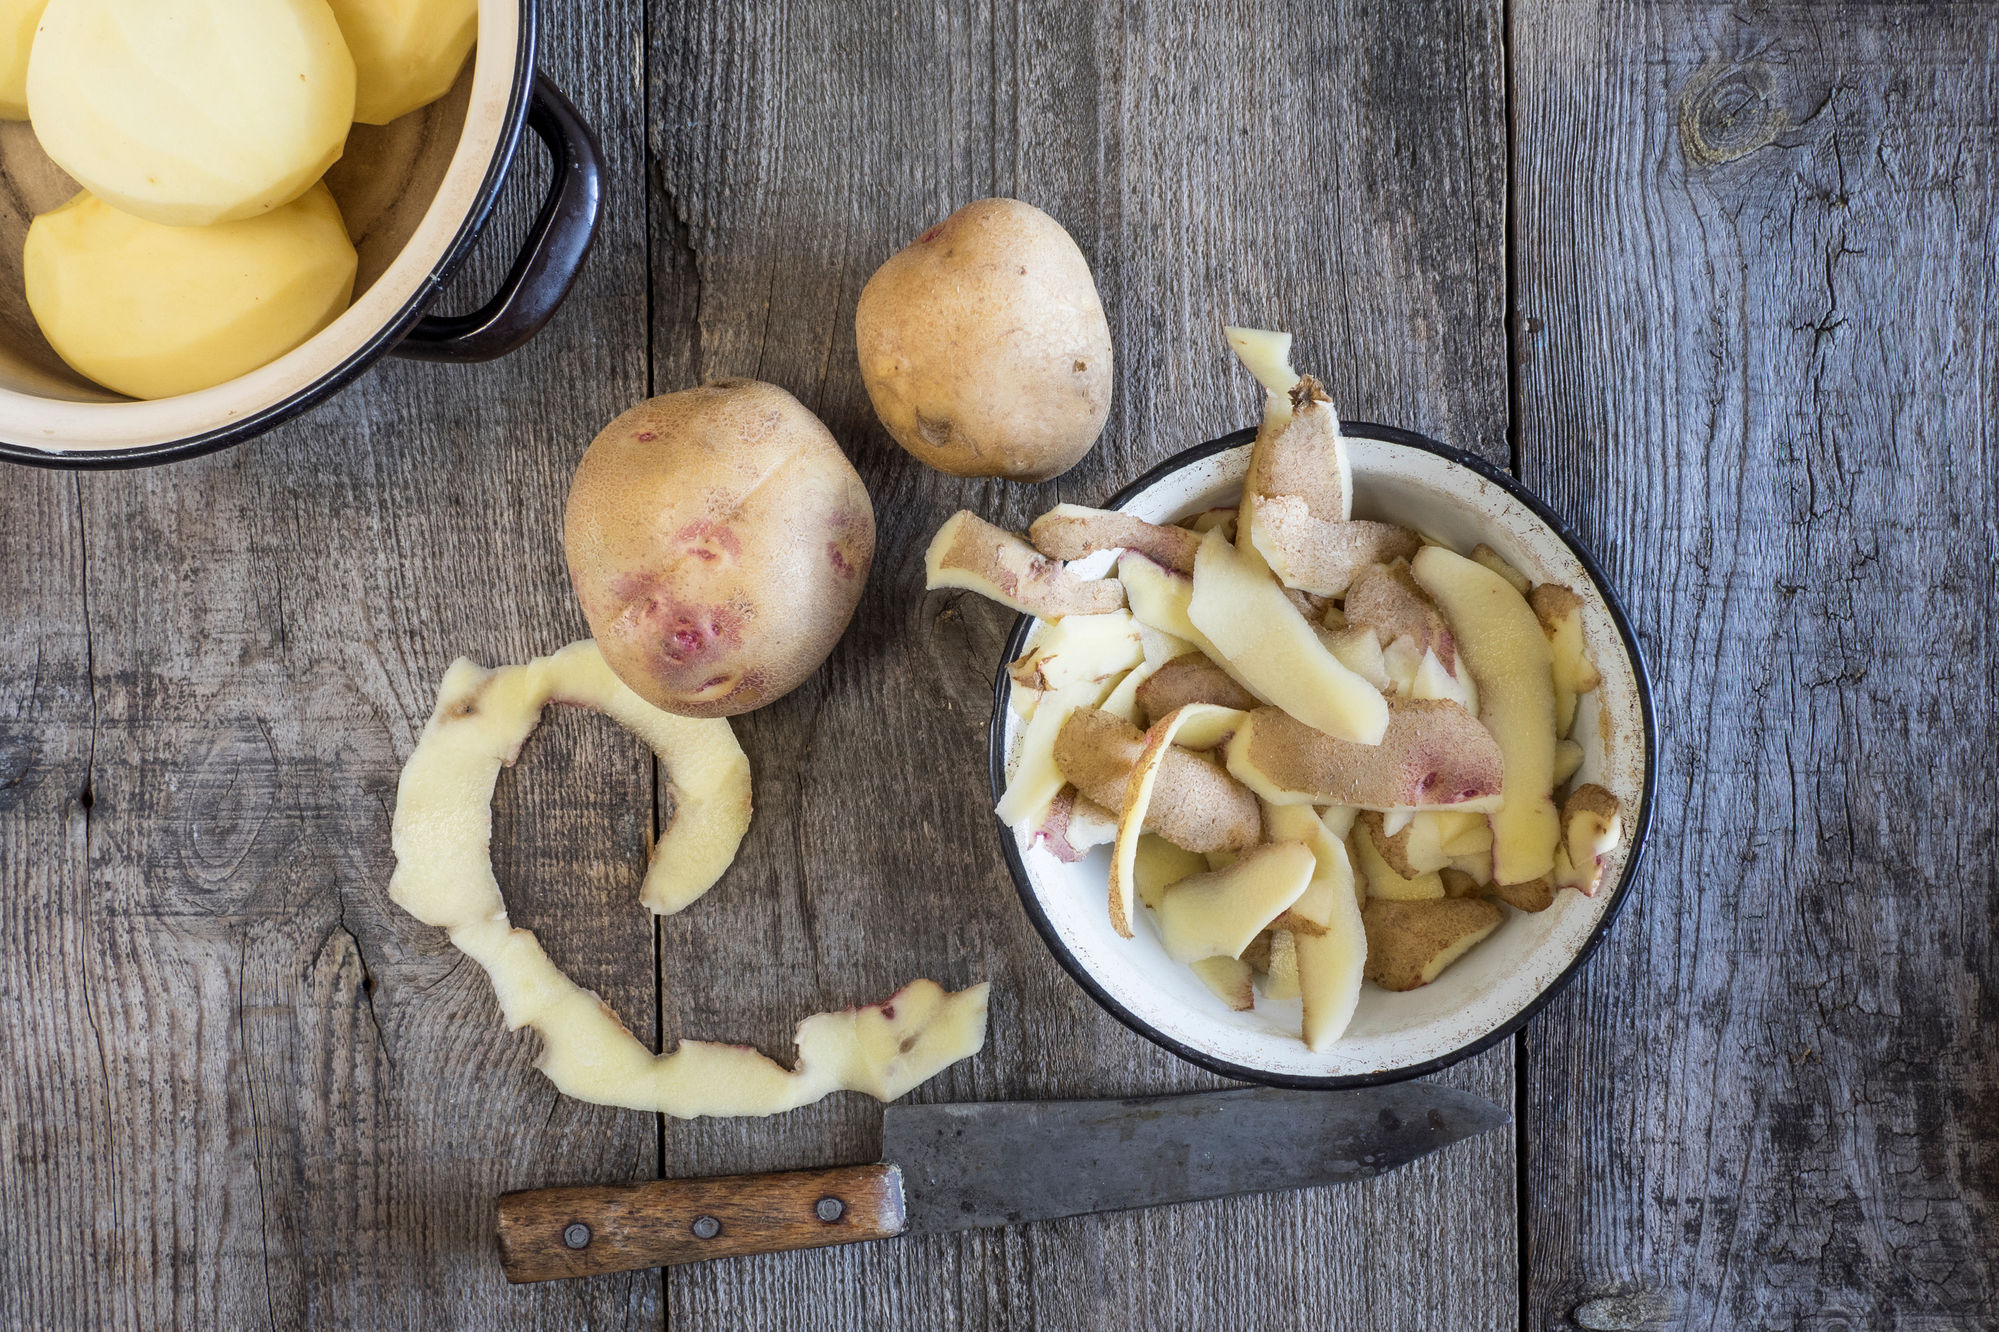 Why You Should Save Your Potato Peels